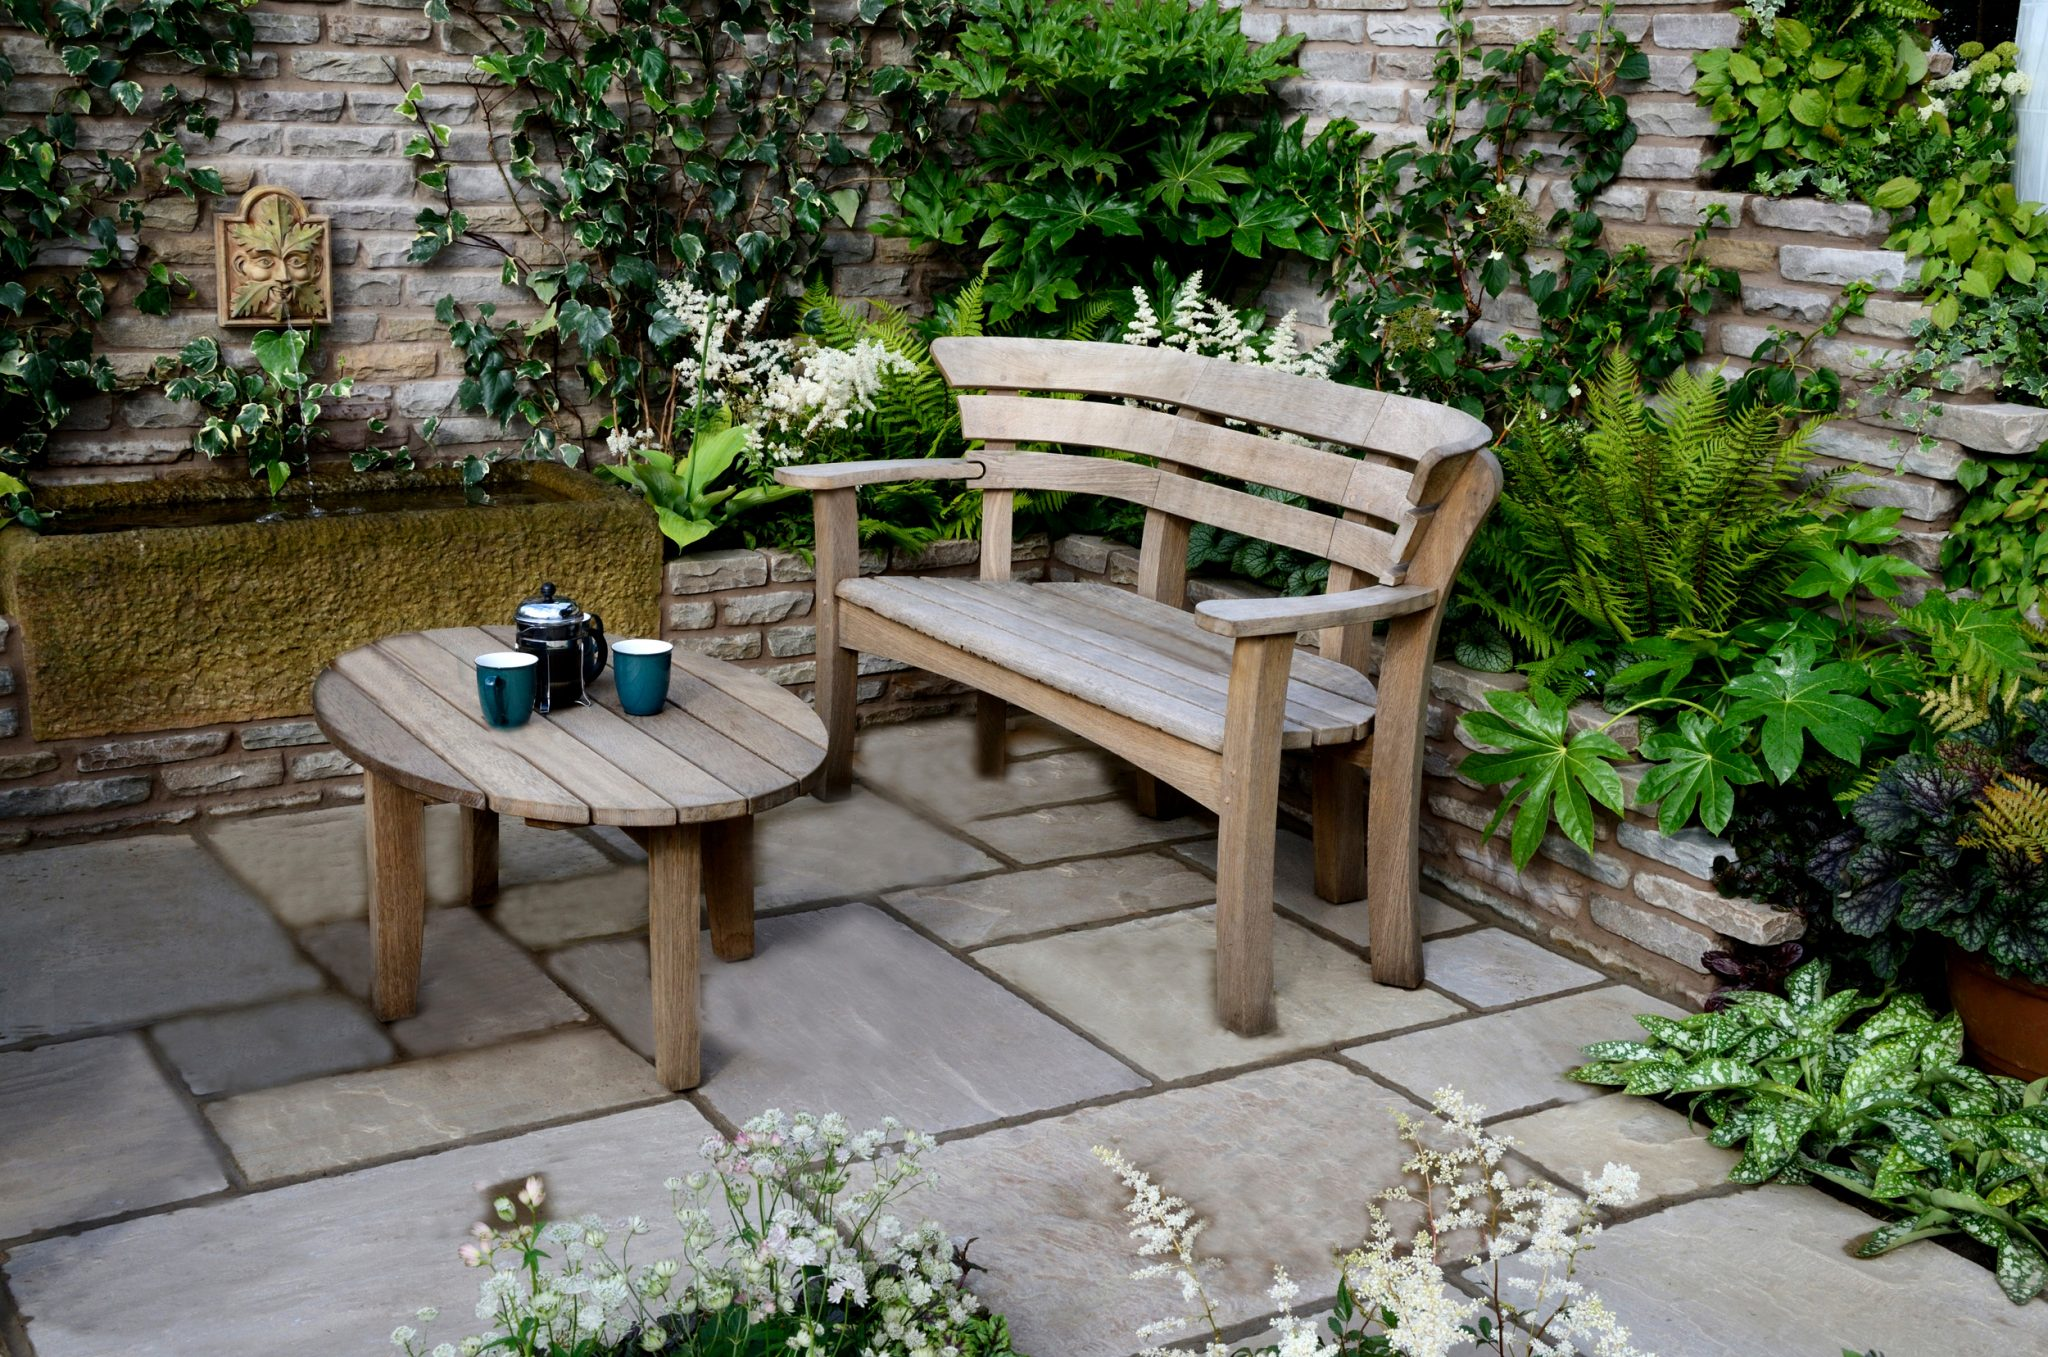 small patio ideas + space-saving solutions (pro tips